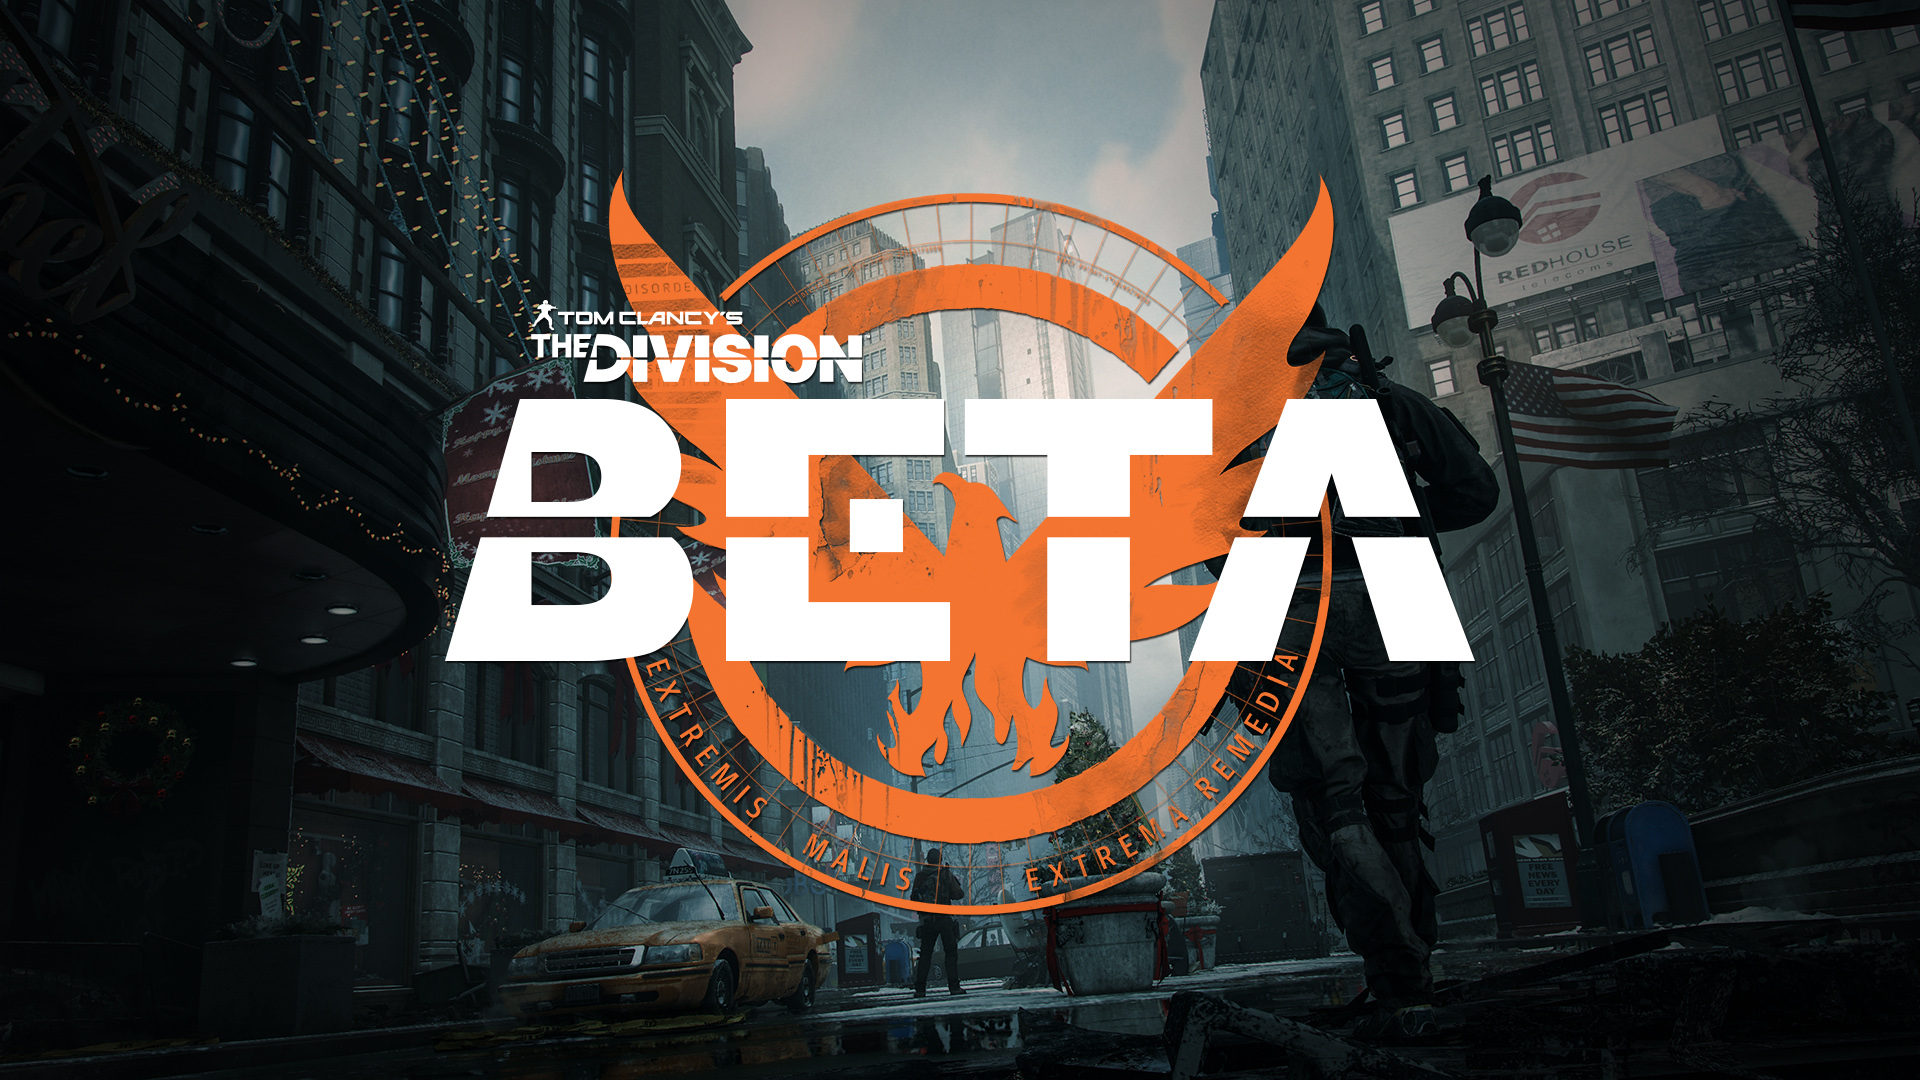 Tom Clancy's The Division Beta, tom clancy game series alexandra marie llewellyn, tom clancy game list, tom clancy games 2015, tom clancy games list pc, tom clancy death, tom clancy jack ryan, tom clancy wildlands